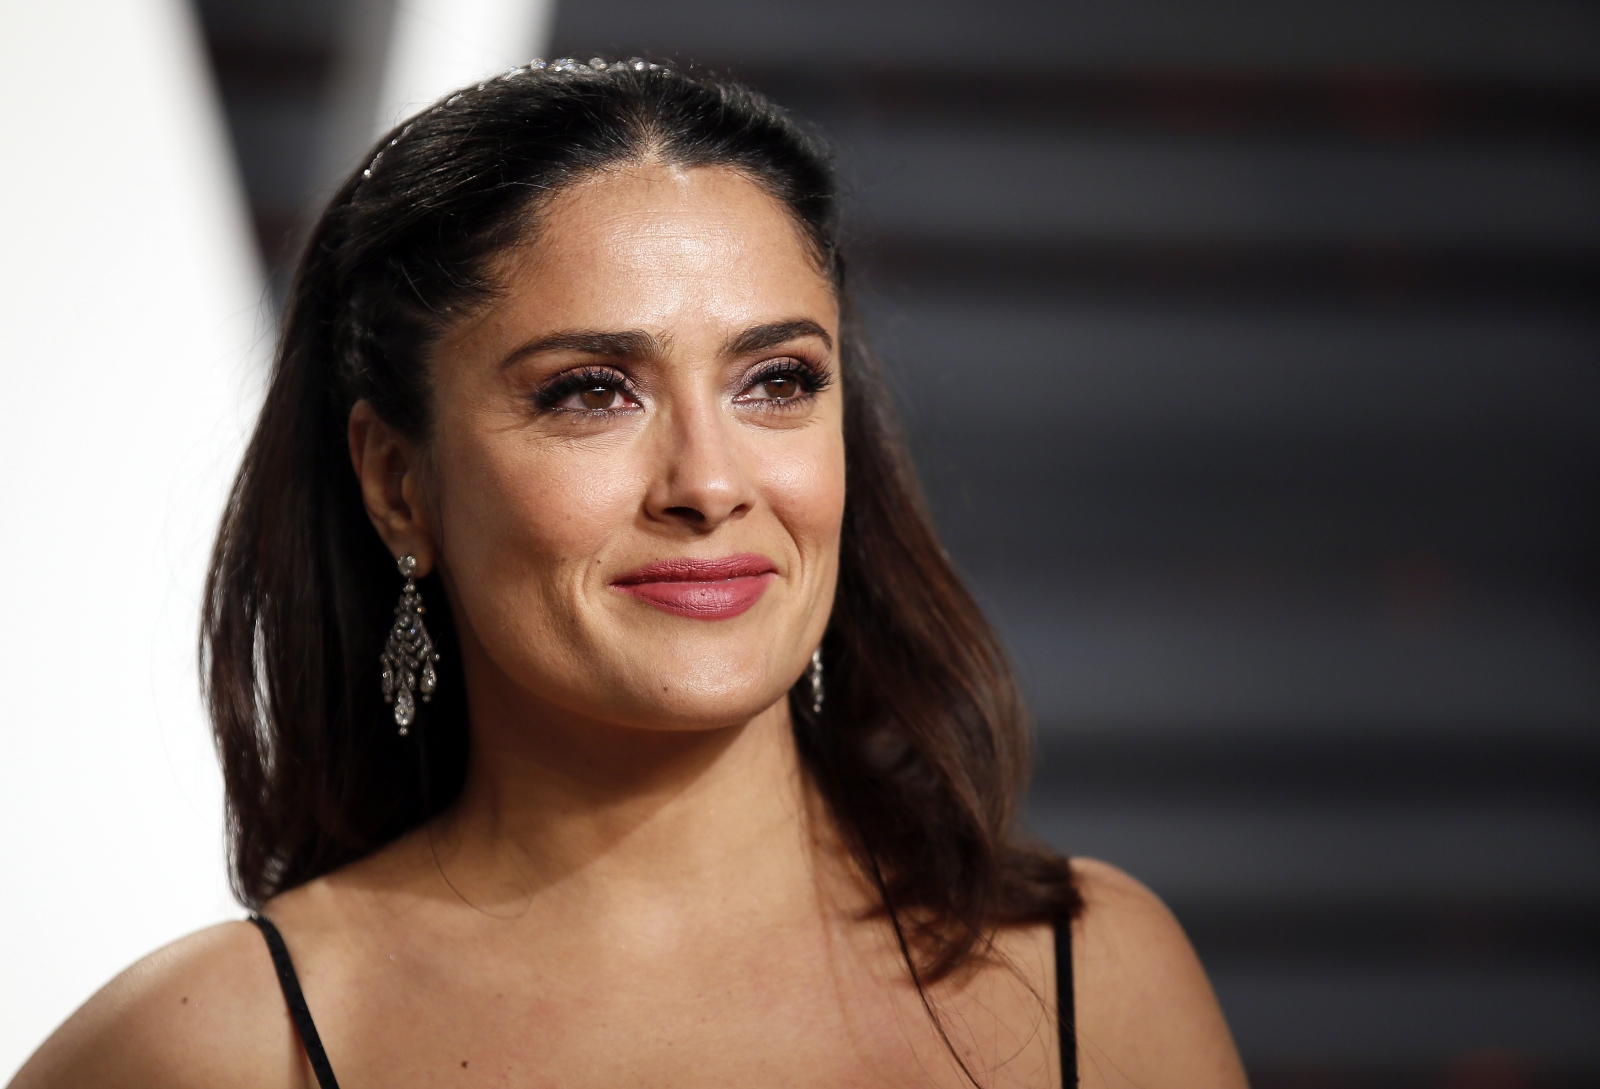 Stunning Salma Hayek Flaunts Curves In Sexy Bare-Backed -2968